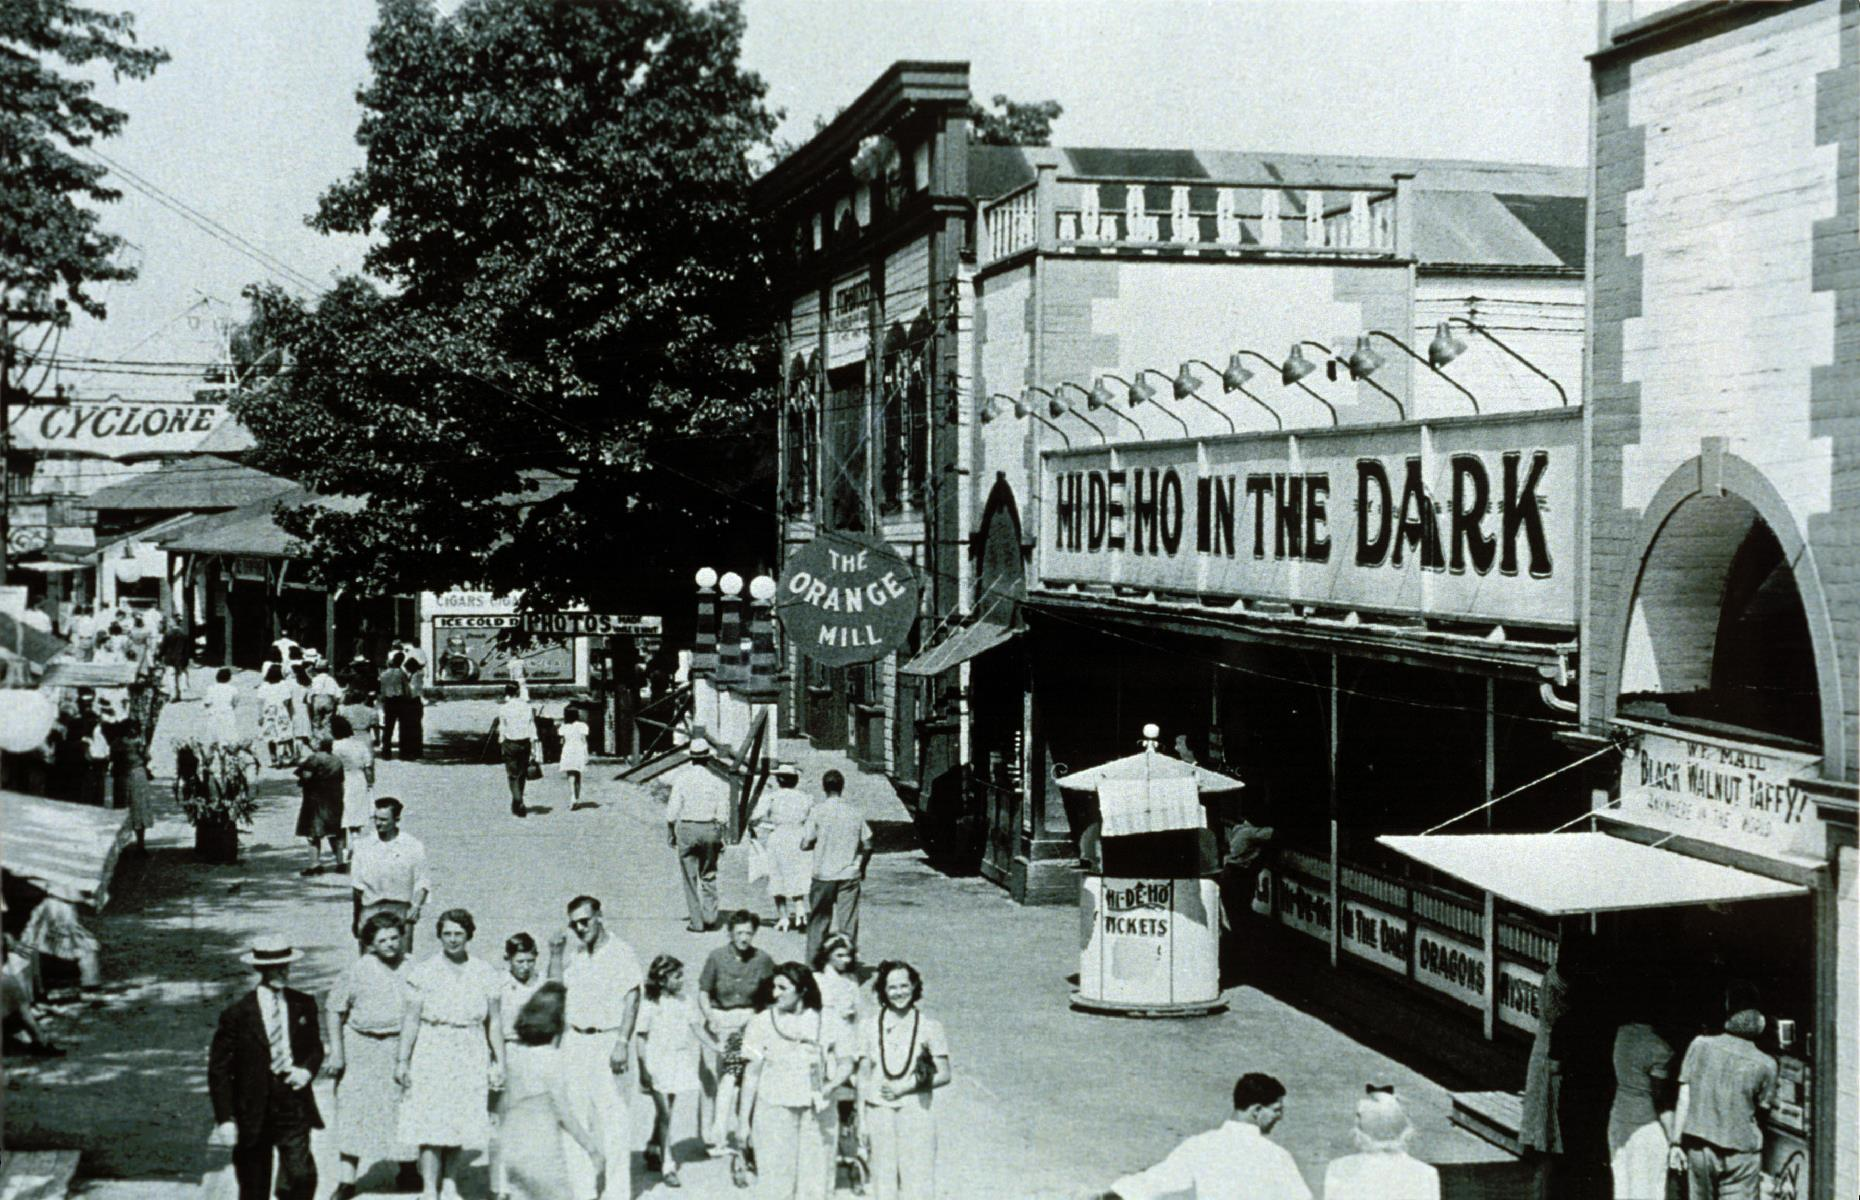 Slide 13 of 35: The park, with its sought-after location on the shores of Lake Erie, went from strength to strength through the 20th century. A favorite attraction throughout the late 1930s and 1940s was Hi De Ho In The Dark, a kitsch fun house filled with mirrors.